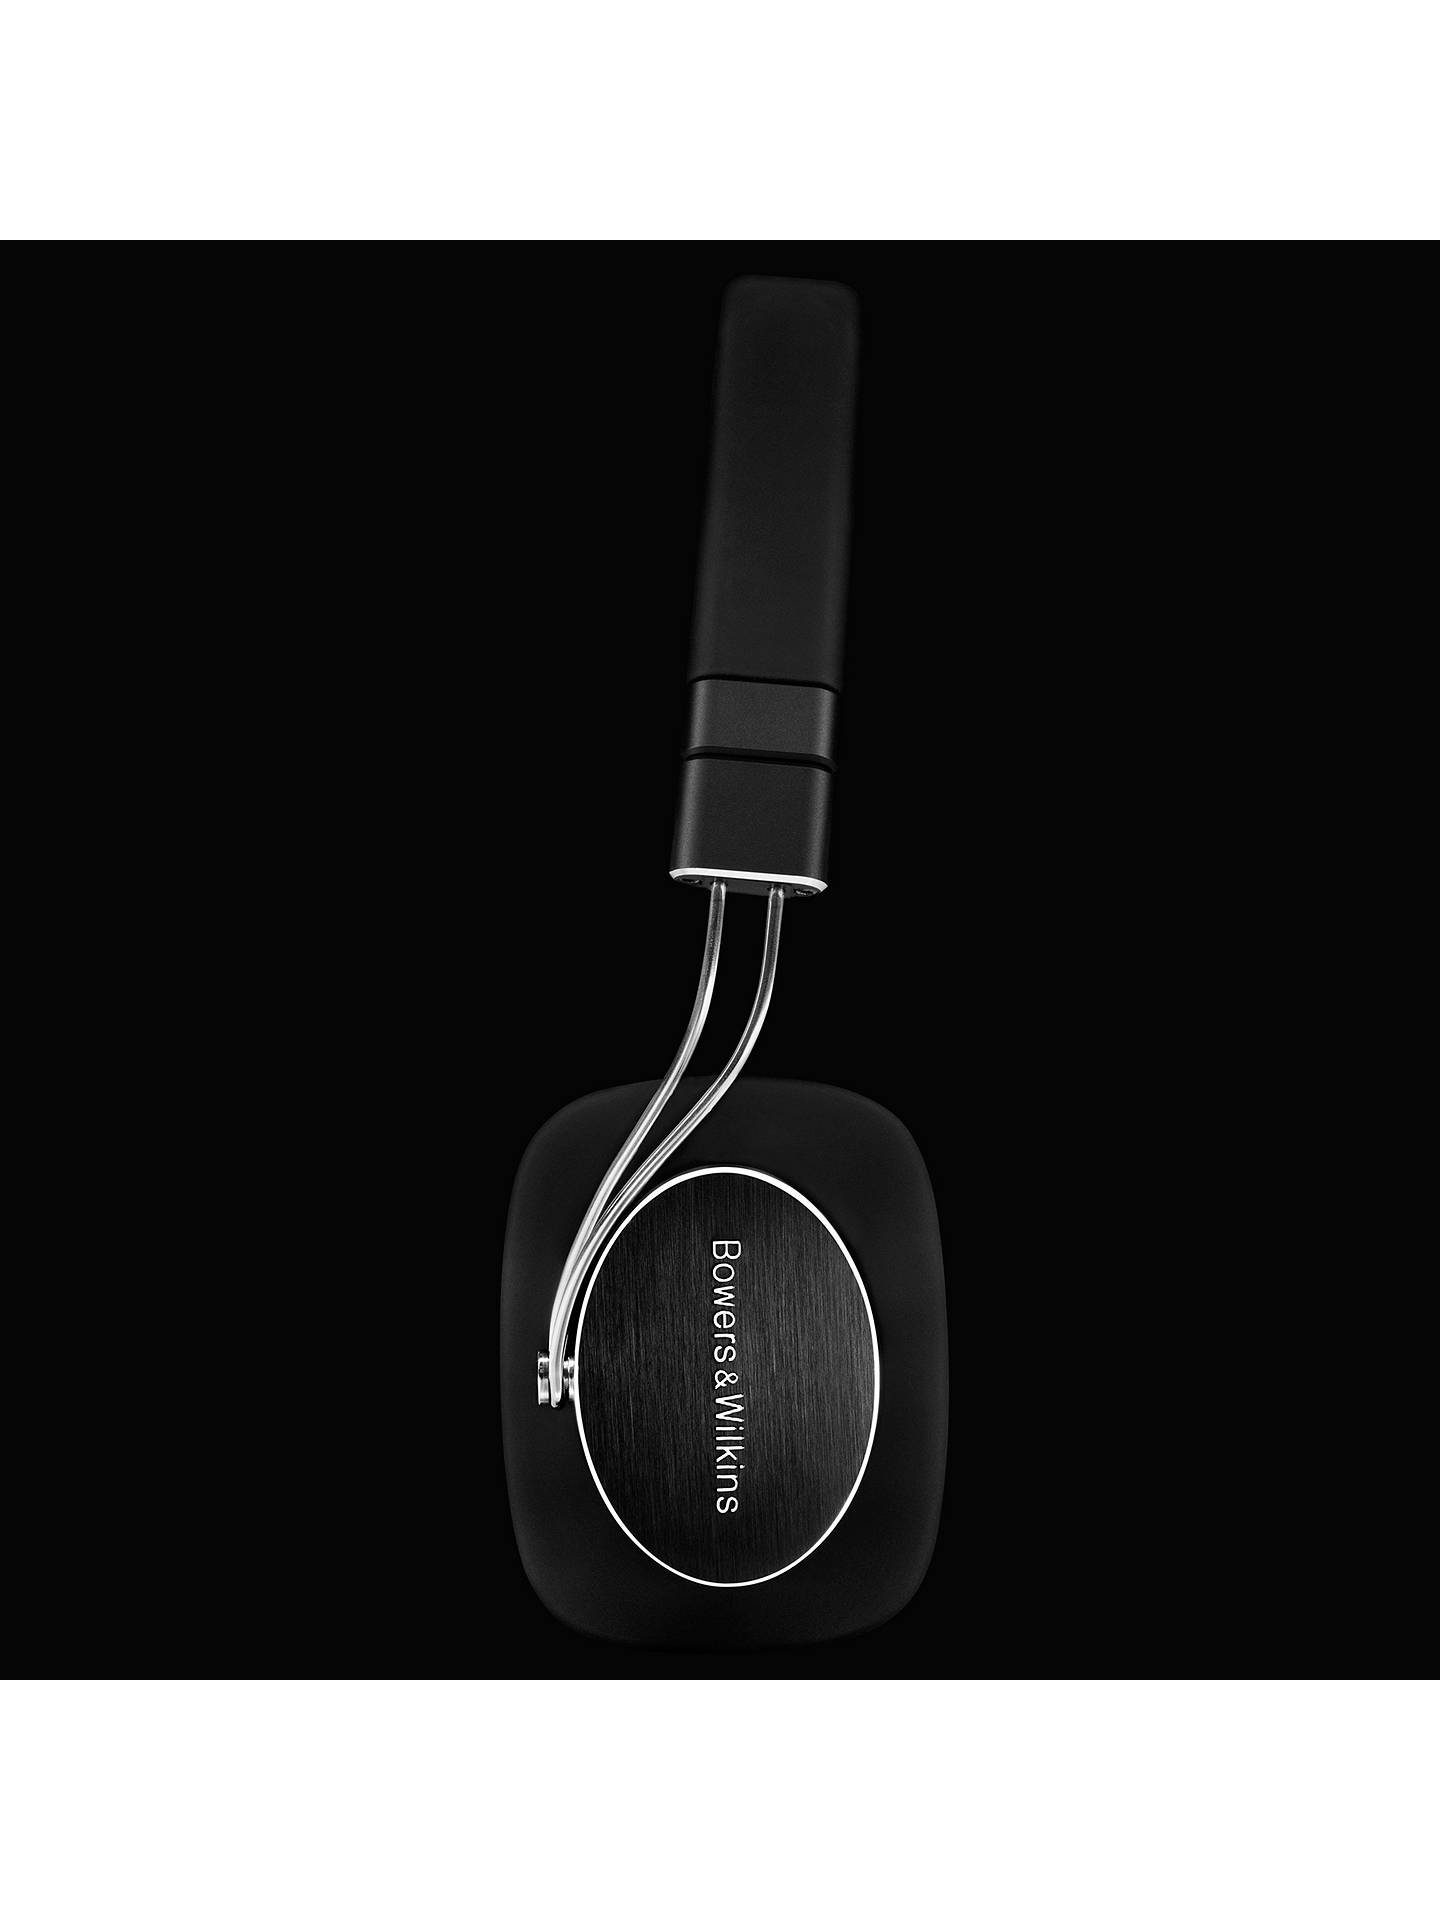 BuyBowers & Wilkins P3 Series 2 On-Ear Headphones, Black Online at johnlewis.com